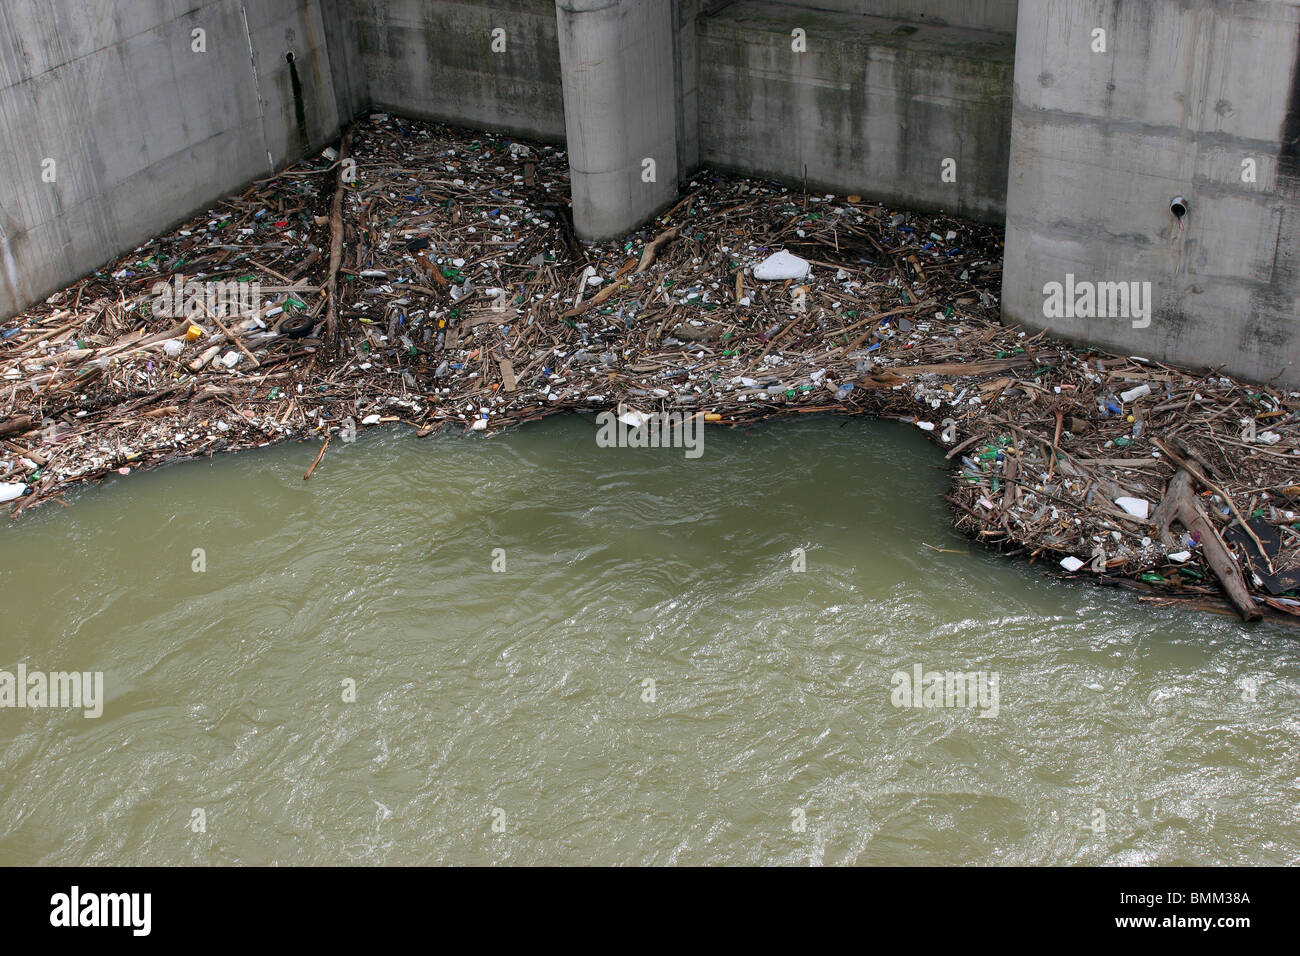 Human  pollution of dams and waterways - Stock Image